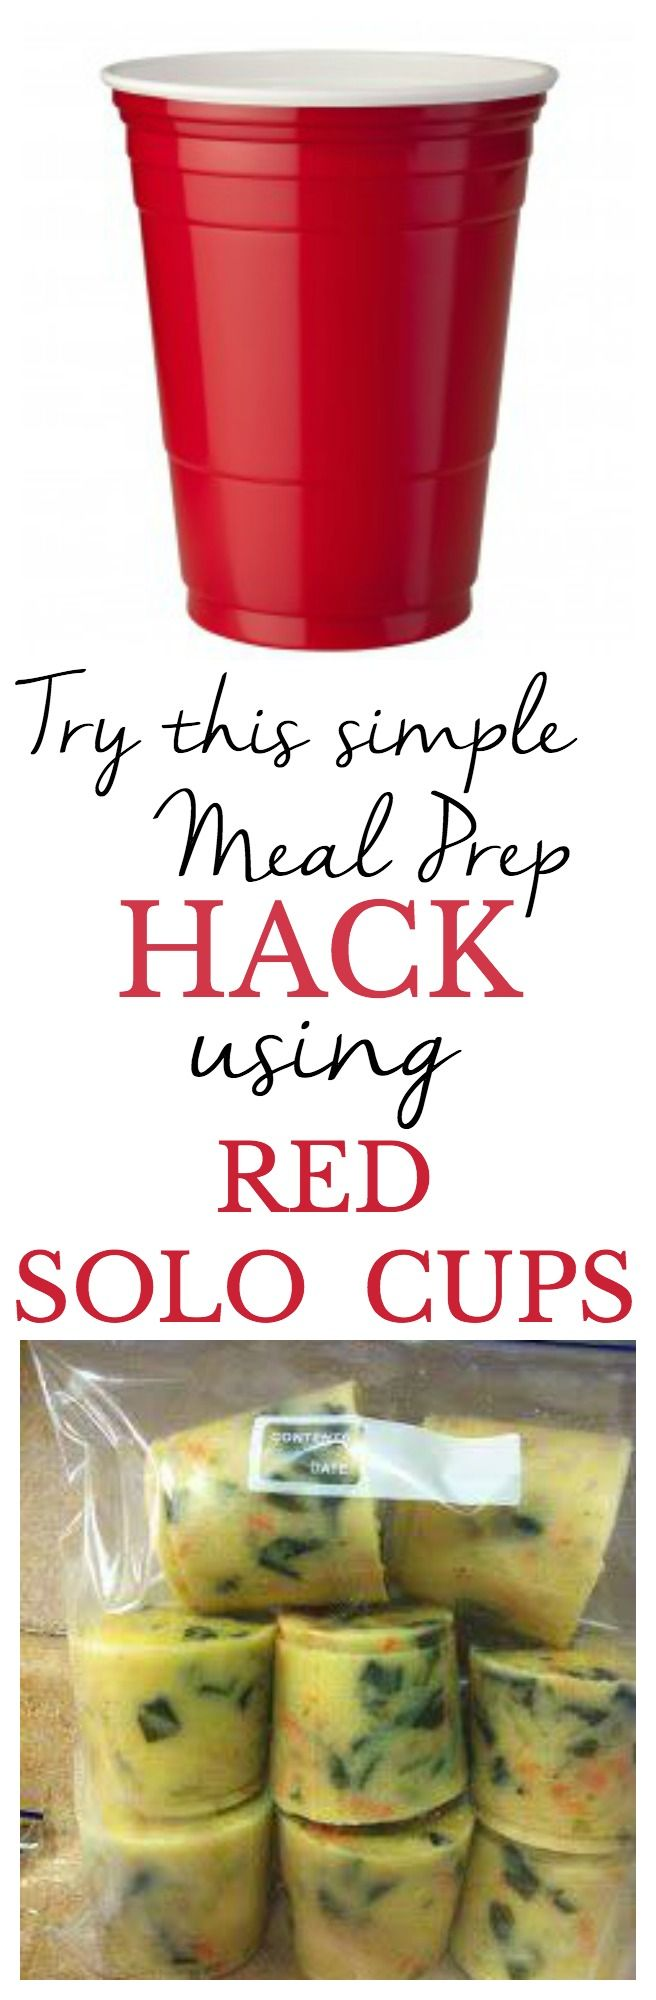 BRILLIANT! Why did I never think of this meal prep hack before? Great for single serving portions of soup, as I always cook in bulk and then get sick of eating the same recipes after a few days! This way I can thaw one serving at a time!